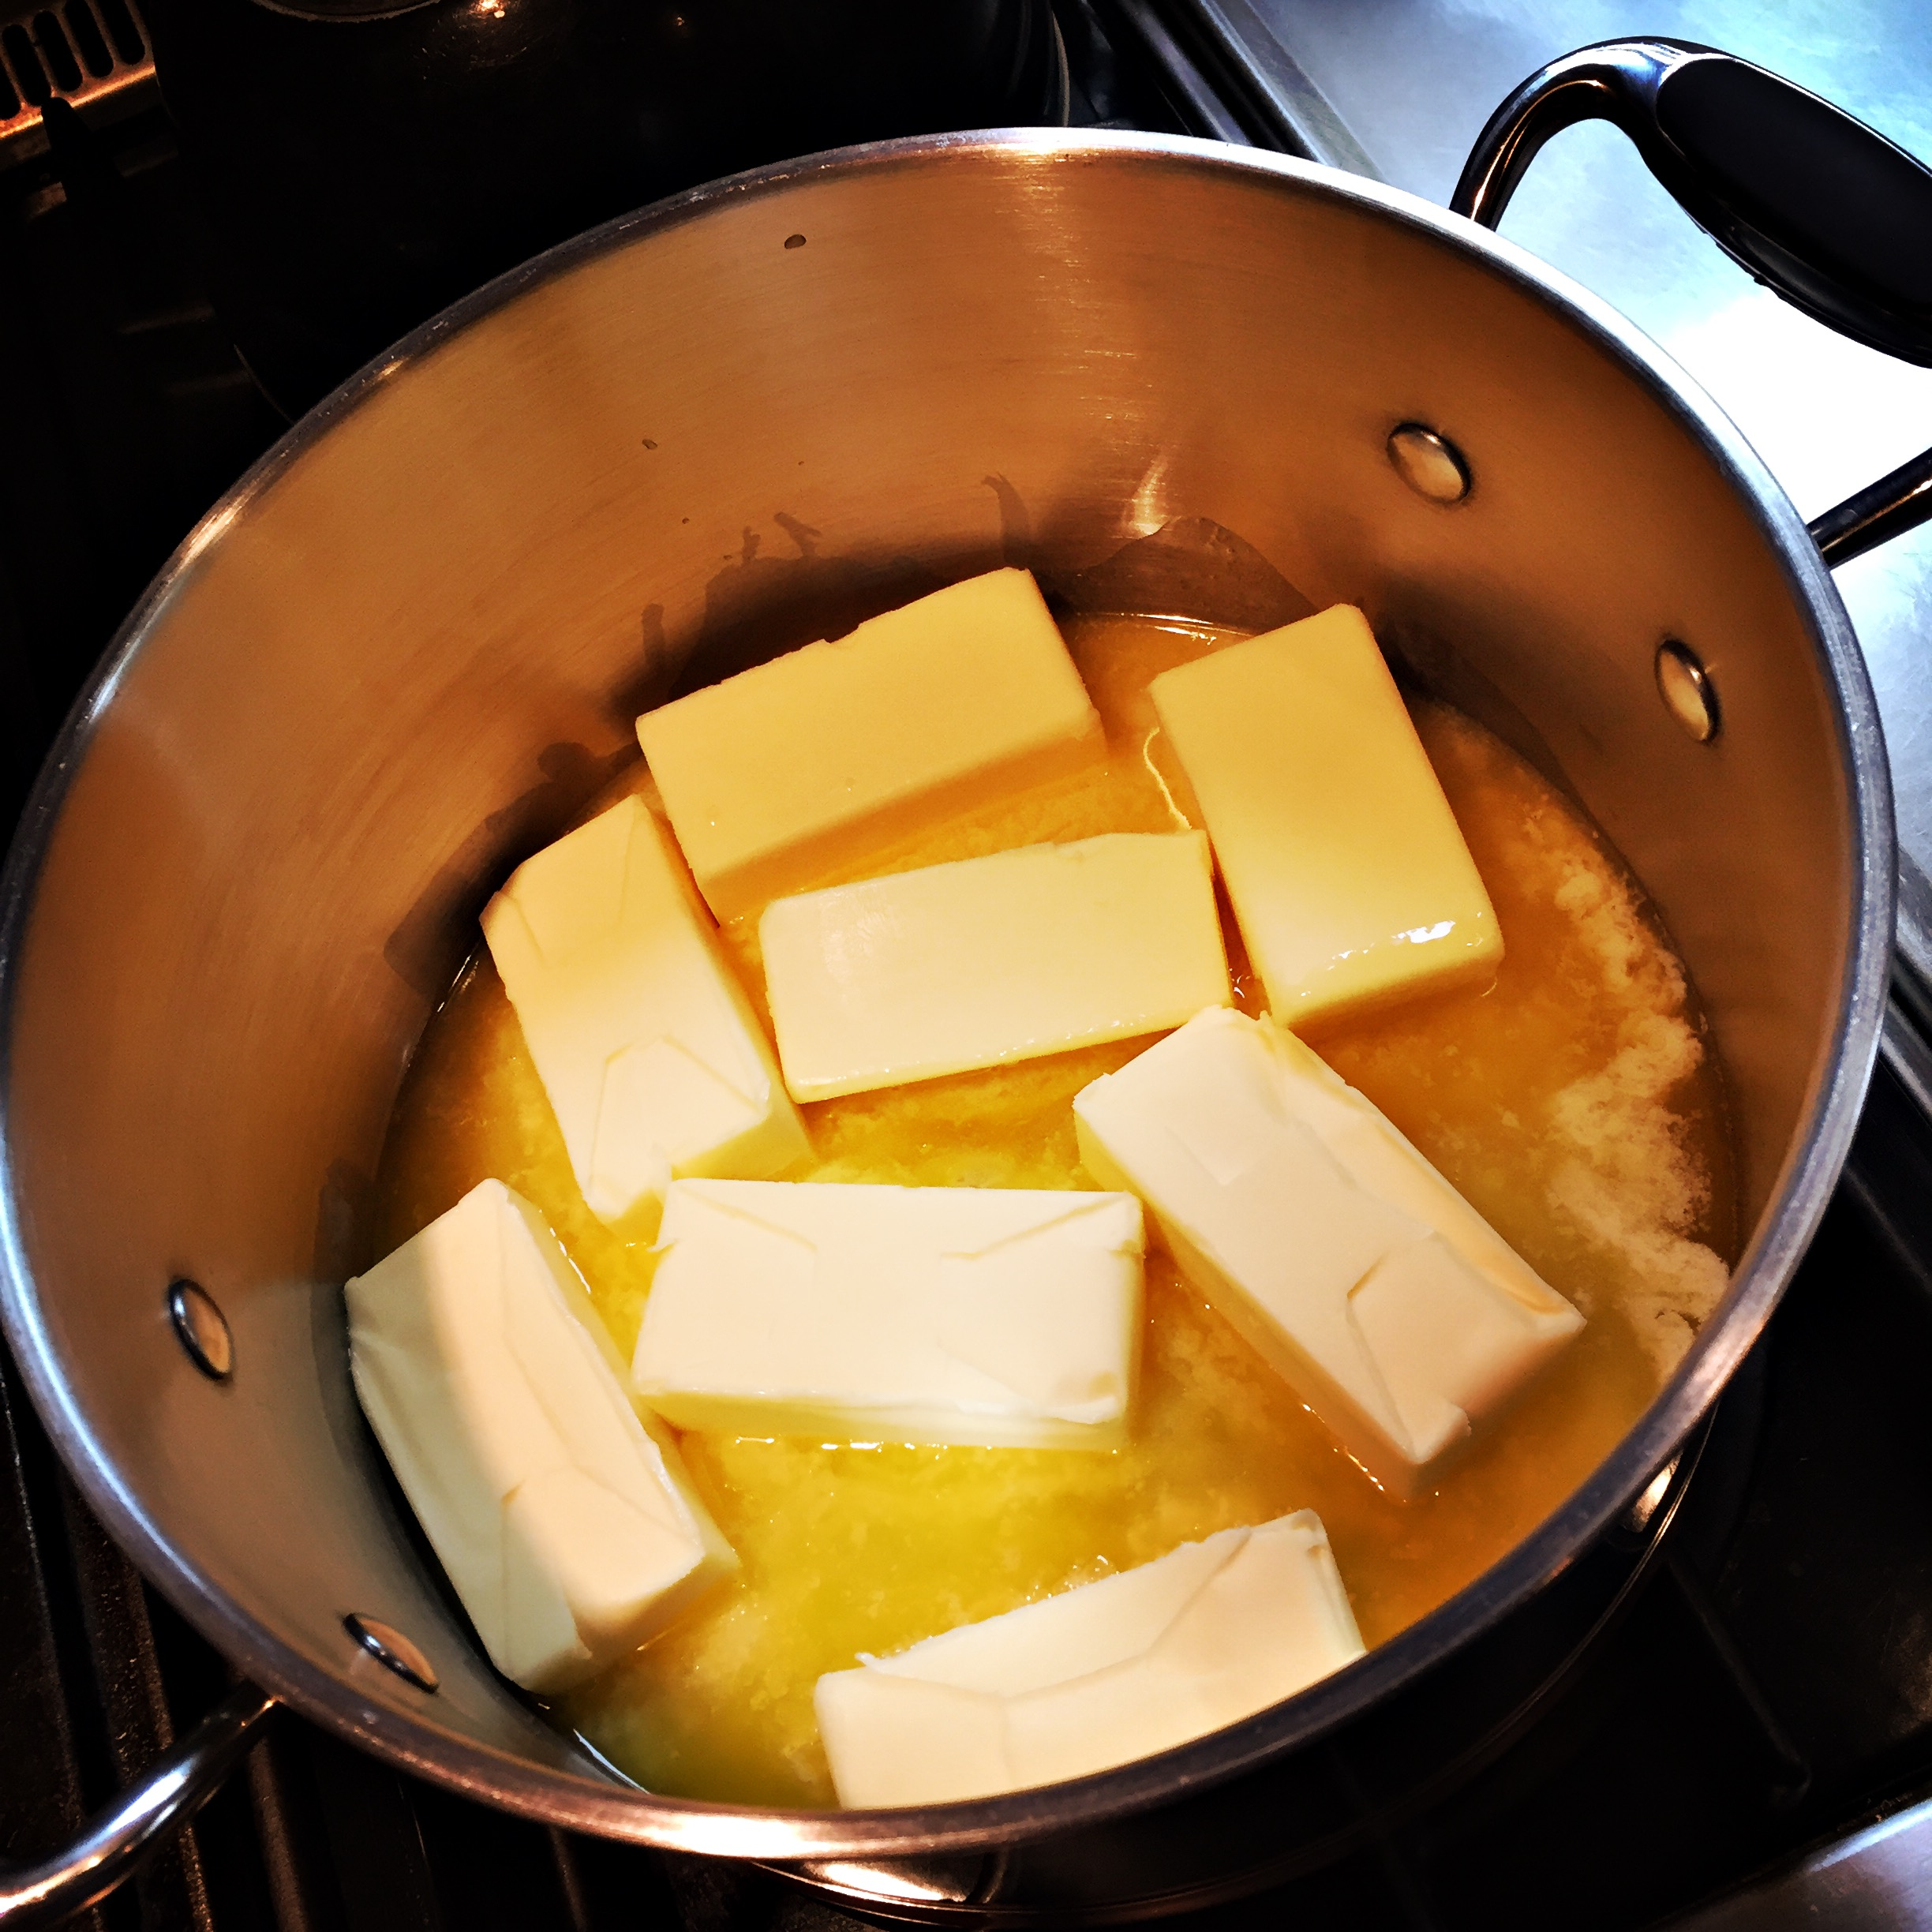 Every kind of butter will act a little bit differently. Being attentive, patient, and observant of the transformation of color and scent will ensure perfect ghee every time!